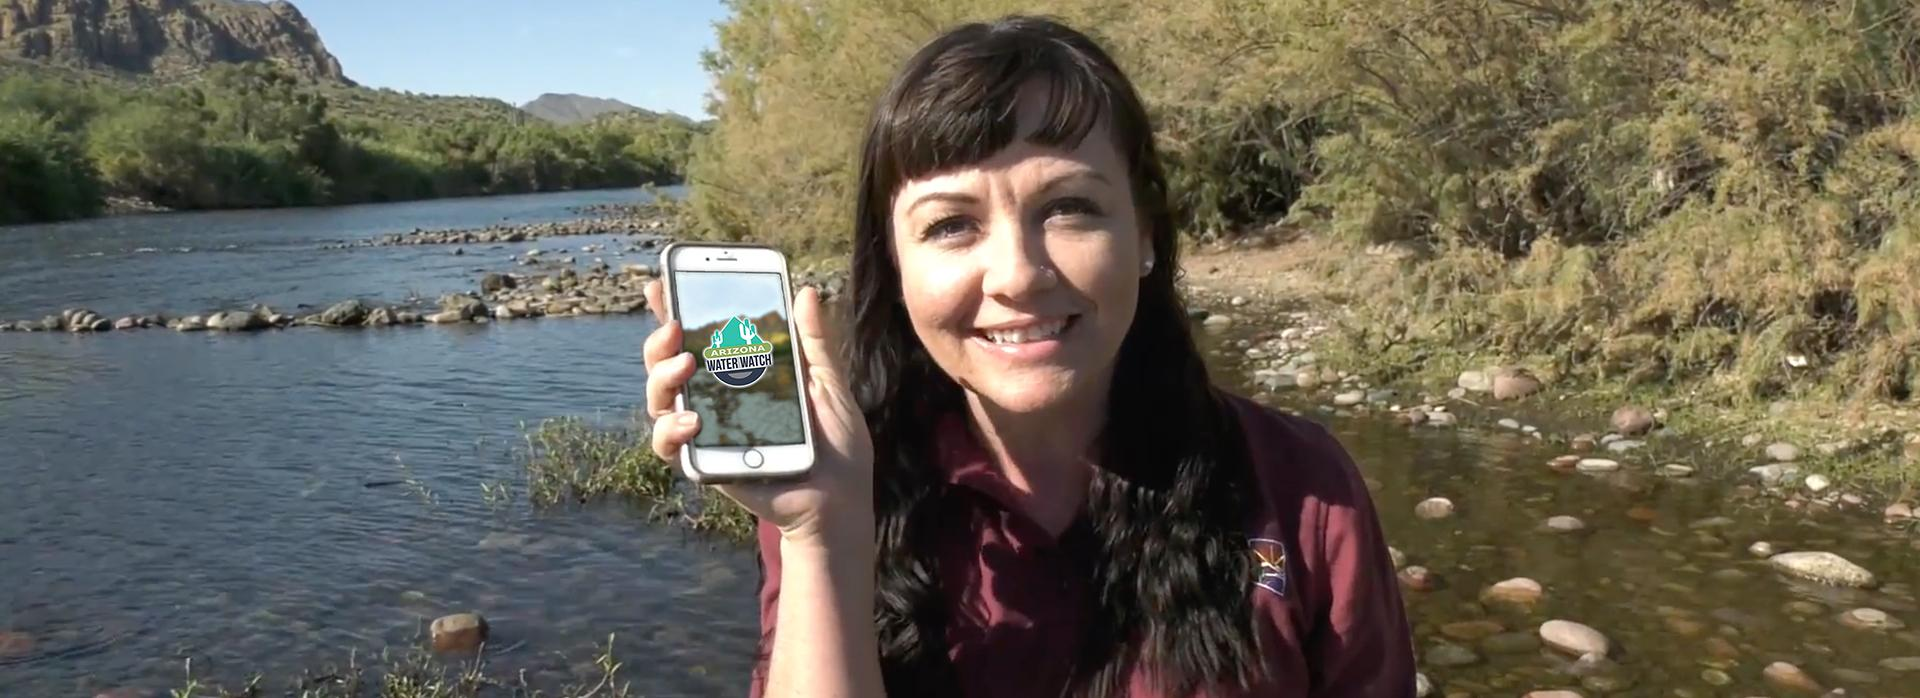 ADEQ Water Watch App